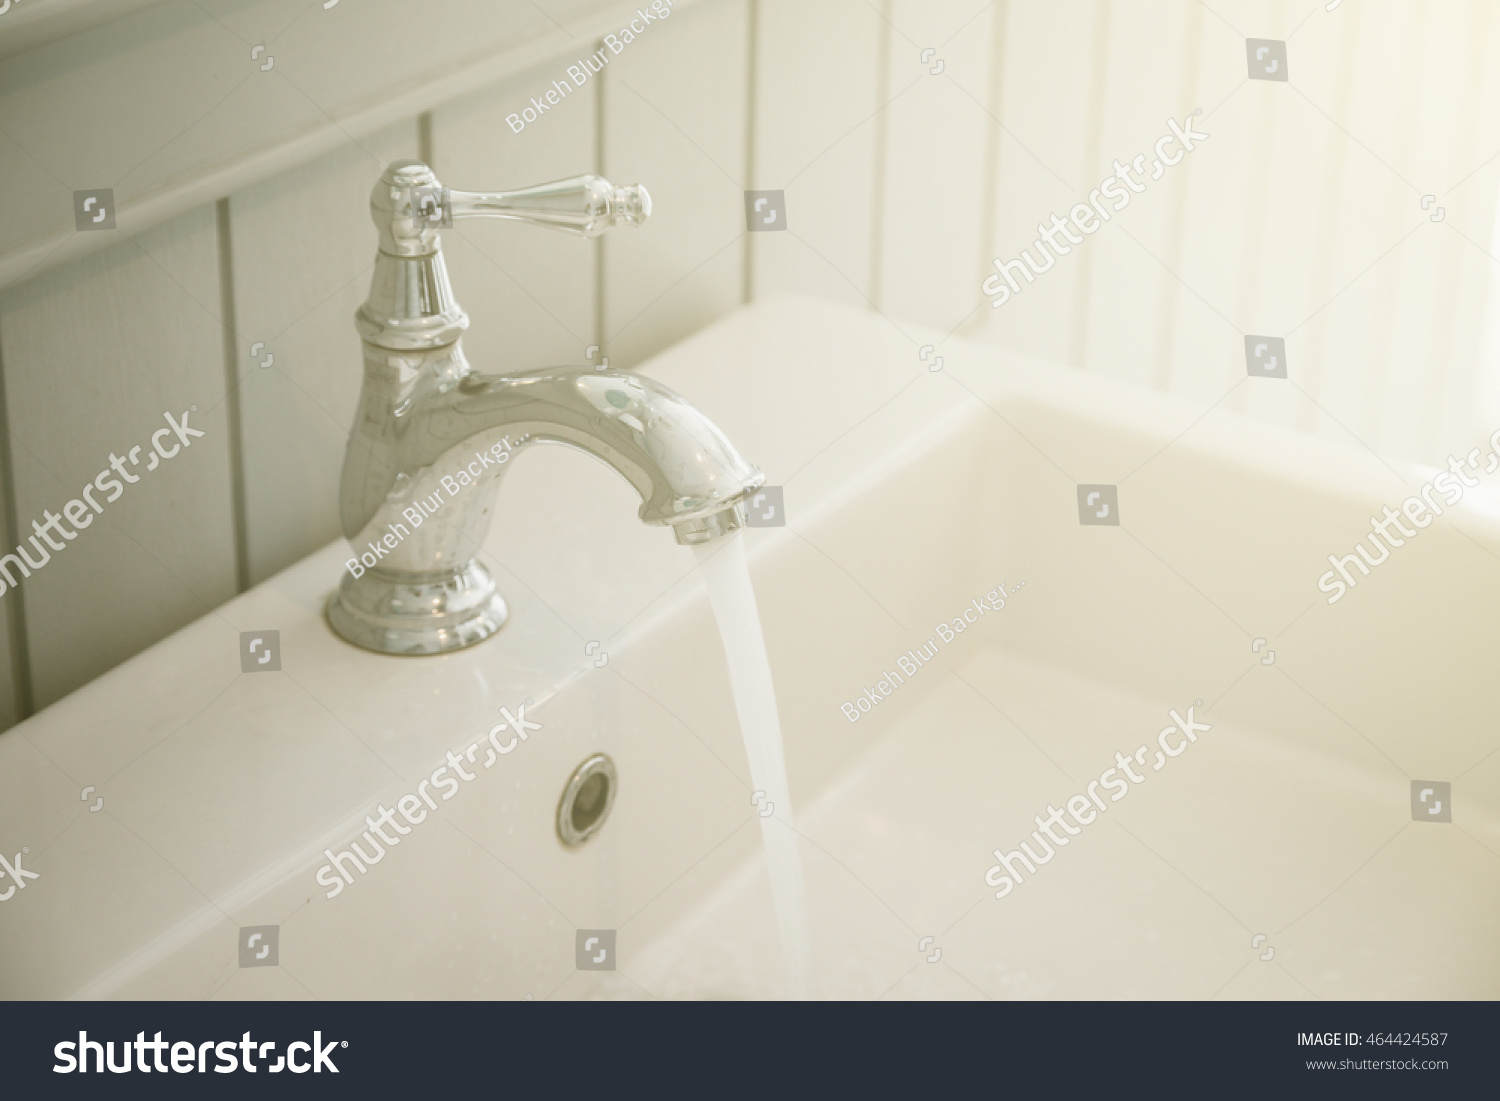 Faucets Toilet Background Stock Photo (100% Legal Protection ...